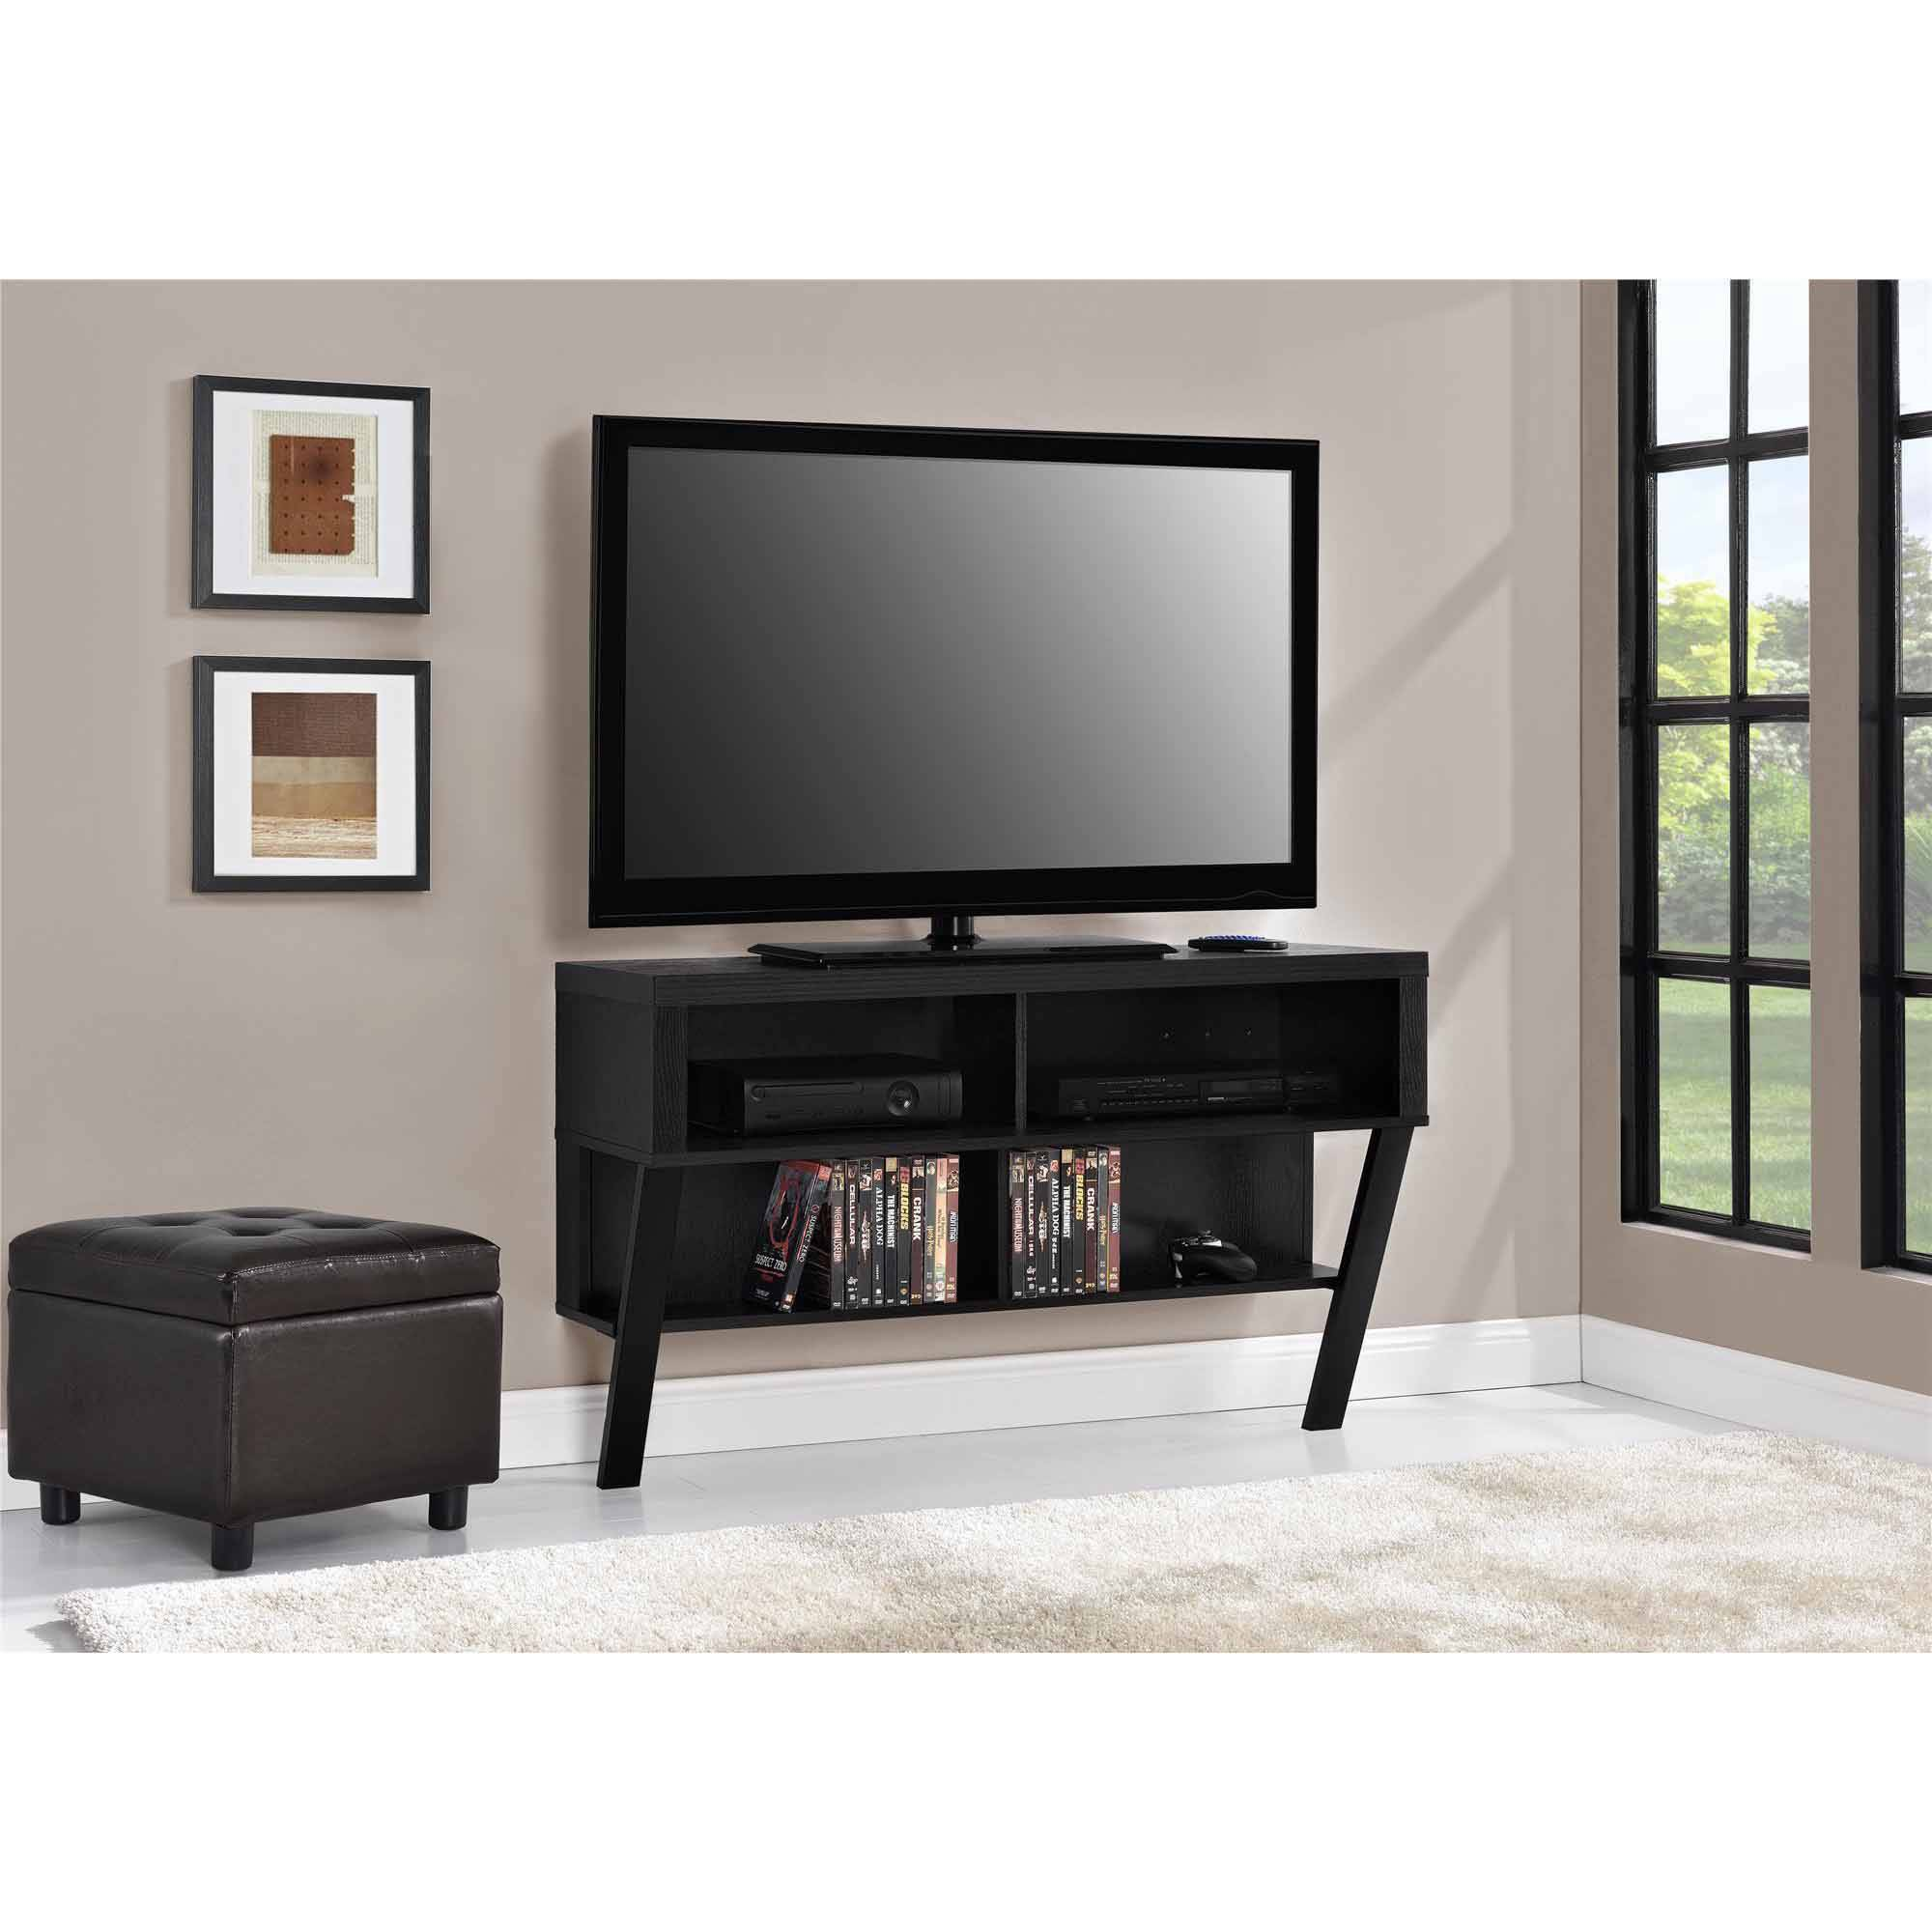 """Altra Wall-Mounted TV Stand for TVs up to 47"""", Black Oak Finish"""